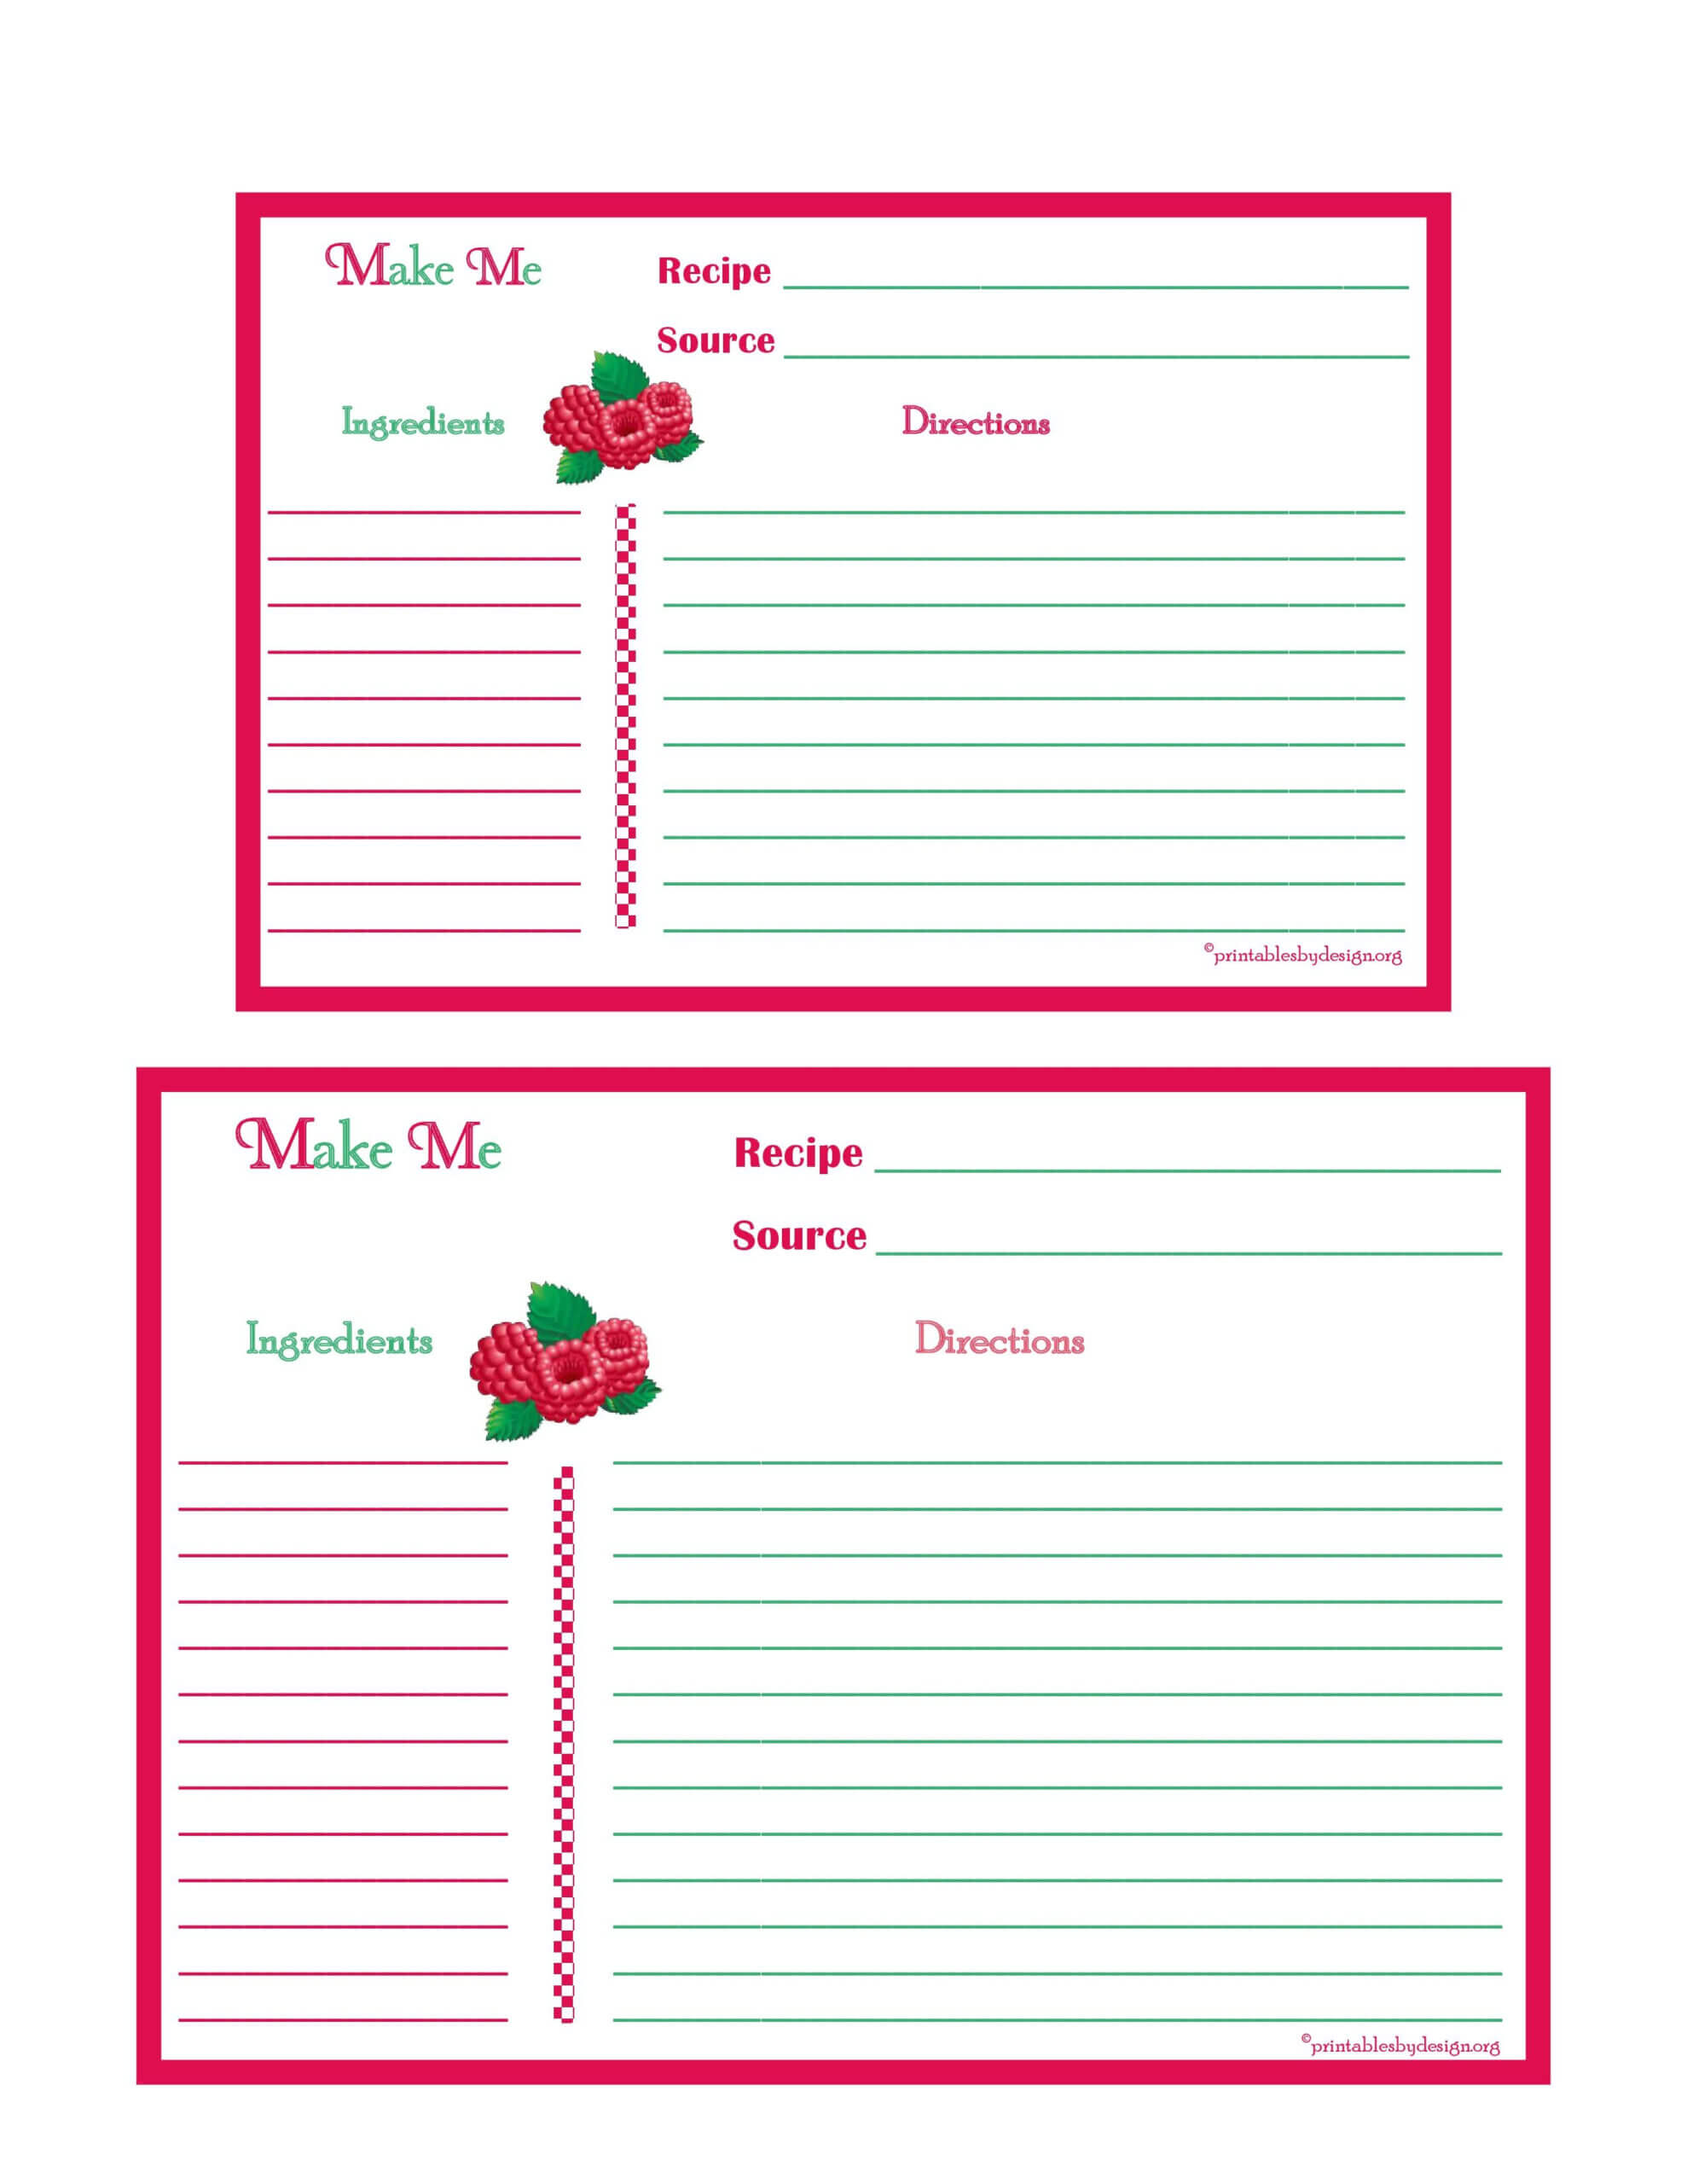 Raspberries Recipe Card - 4X6 & 5X7 Page | Printable Recipe Within 4X6 Photo Card Template Free